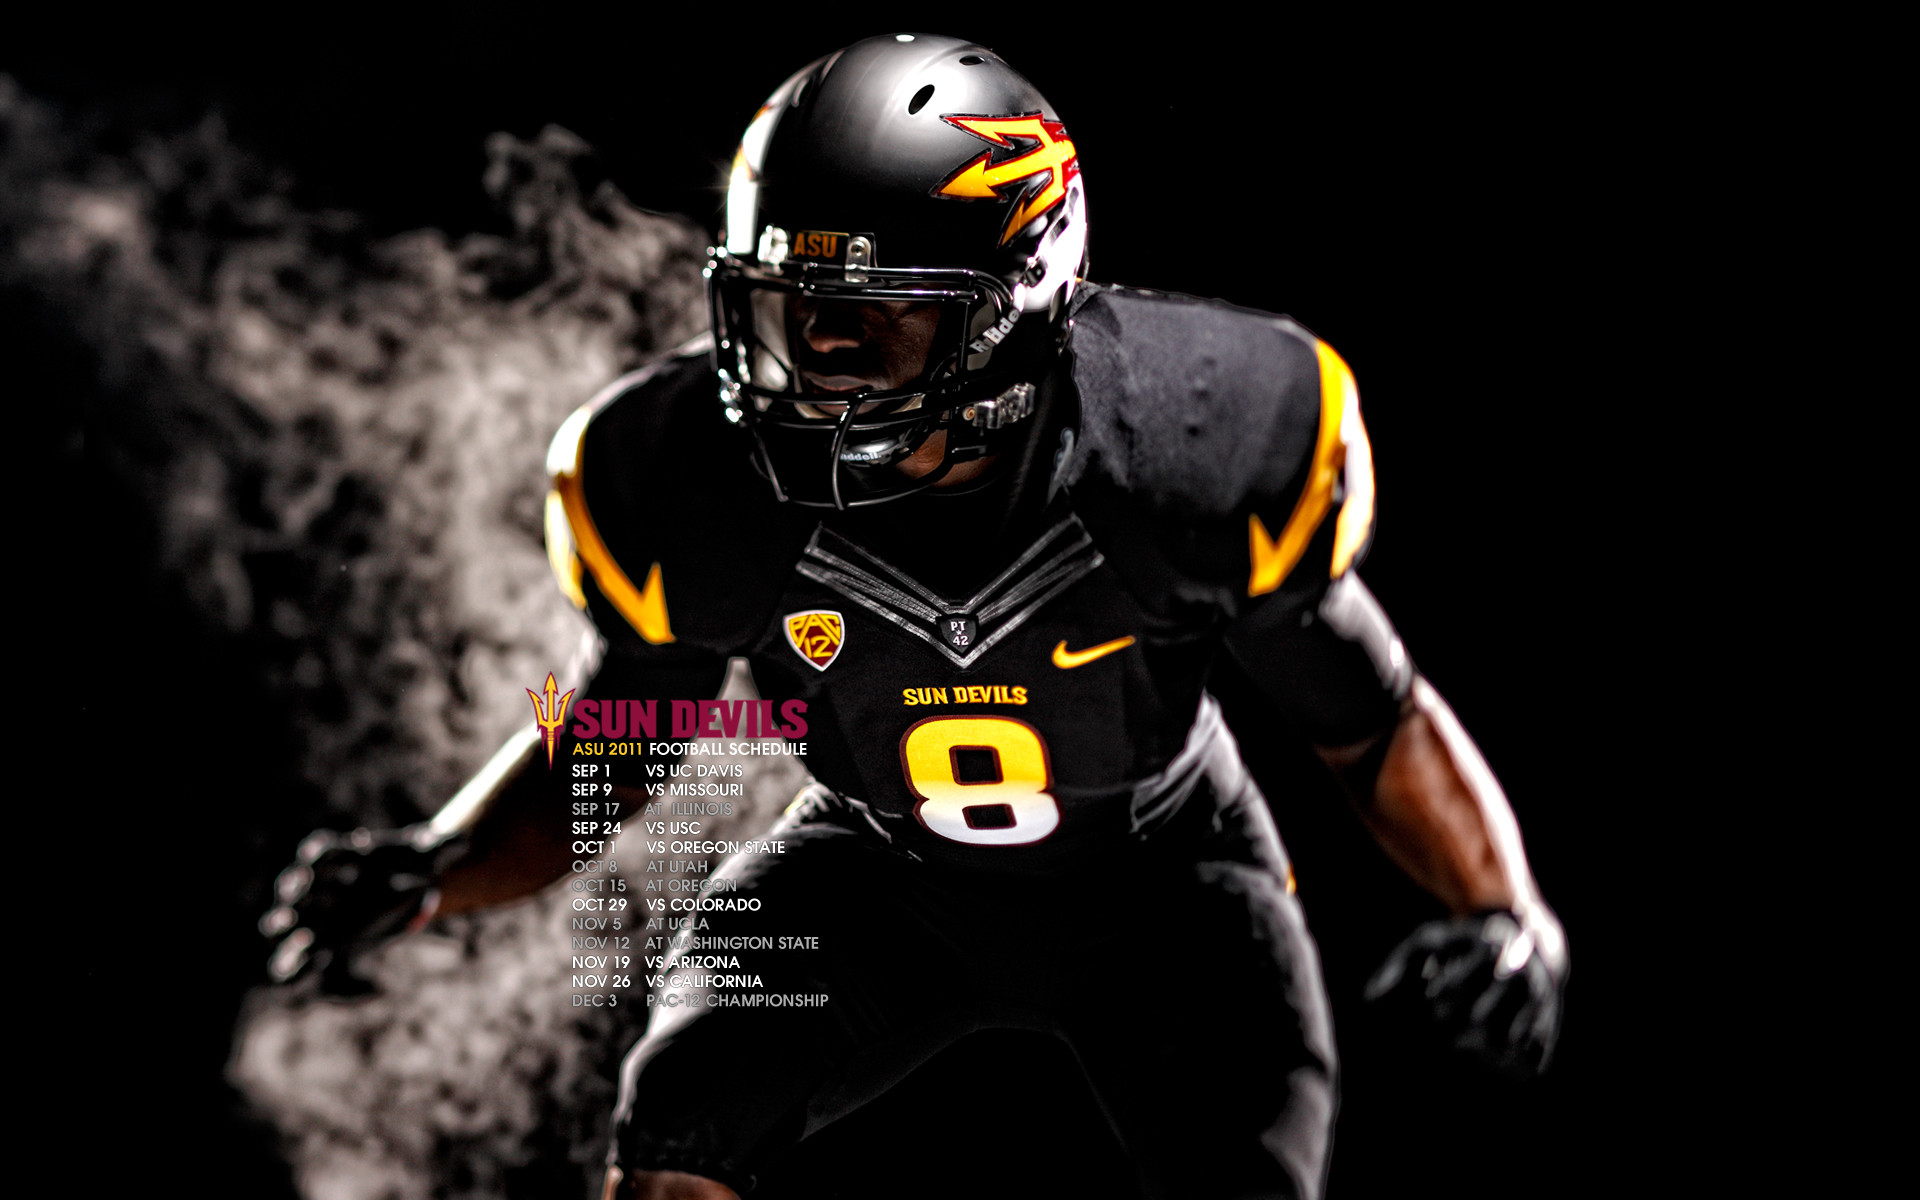 1920x1200 Backgrounds ASU Students Site 640×960 Arizona state university wallpaper  (34 Wallpapers) |